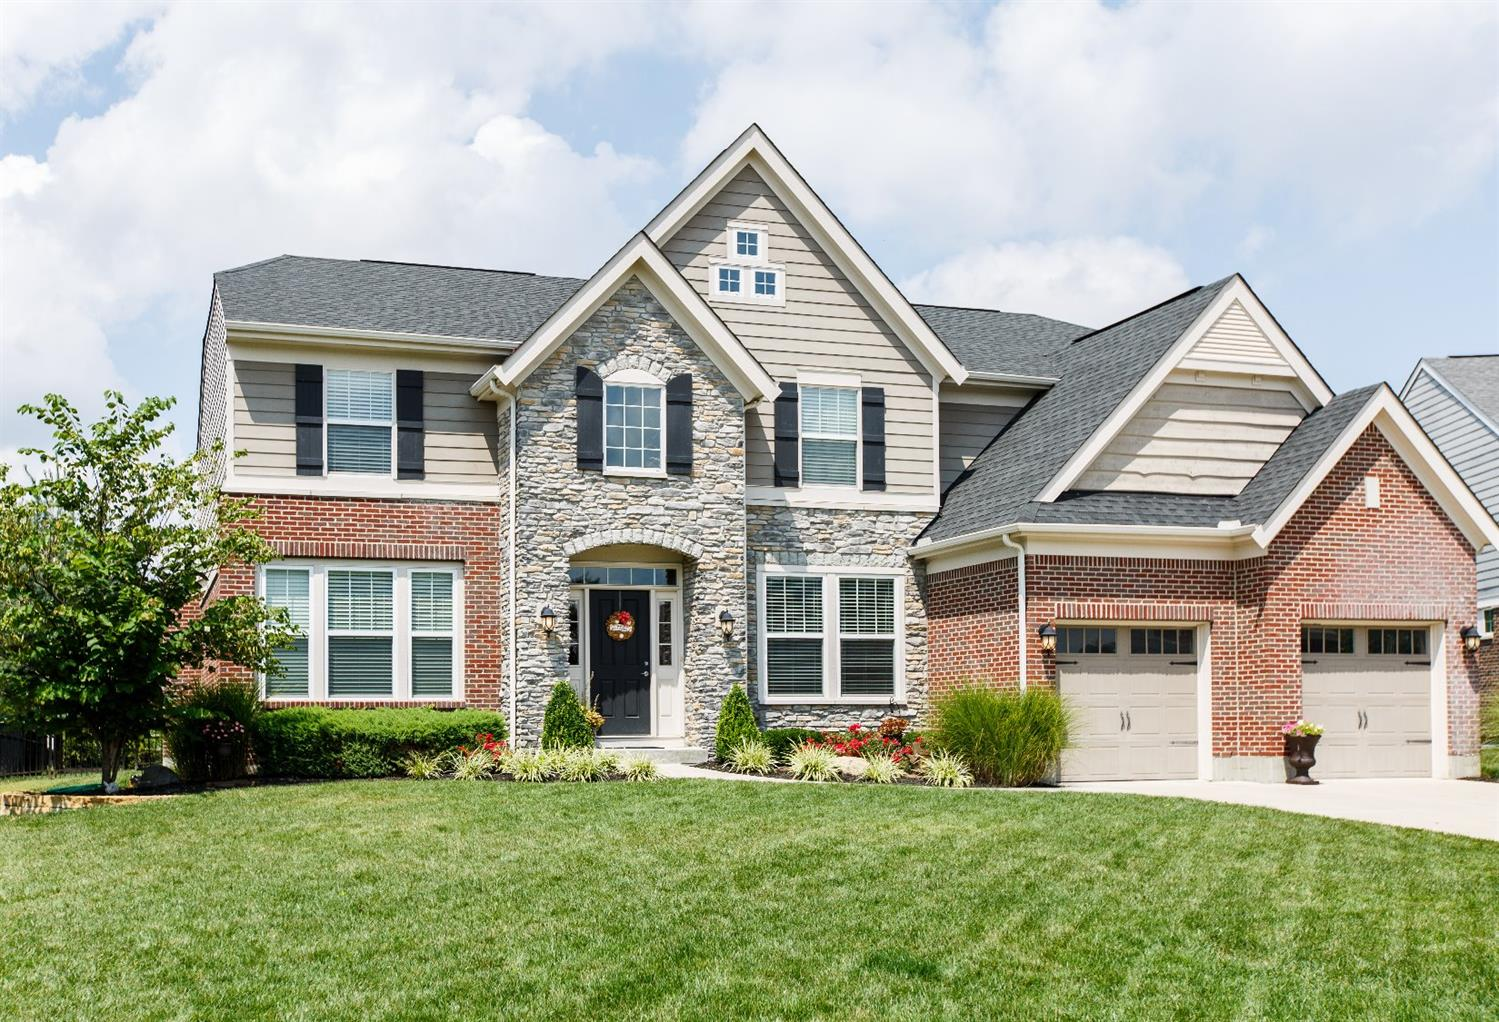 Property for sale at 10012 Plantation Pointe Drive, Symmes Twp,  Ohio 45140